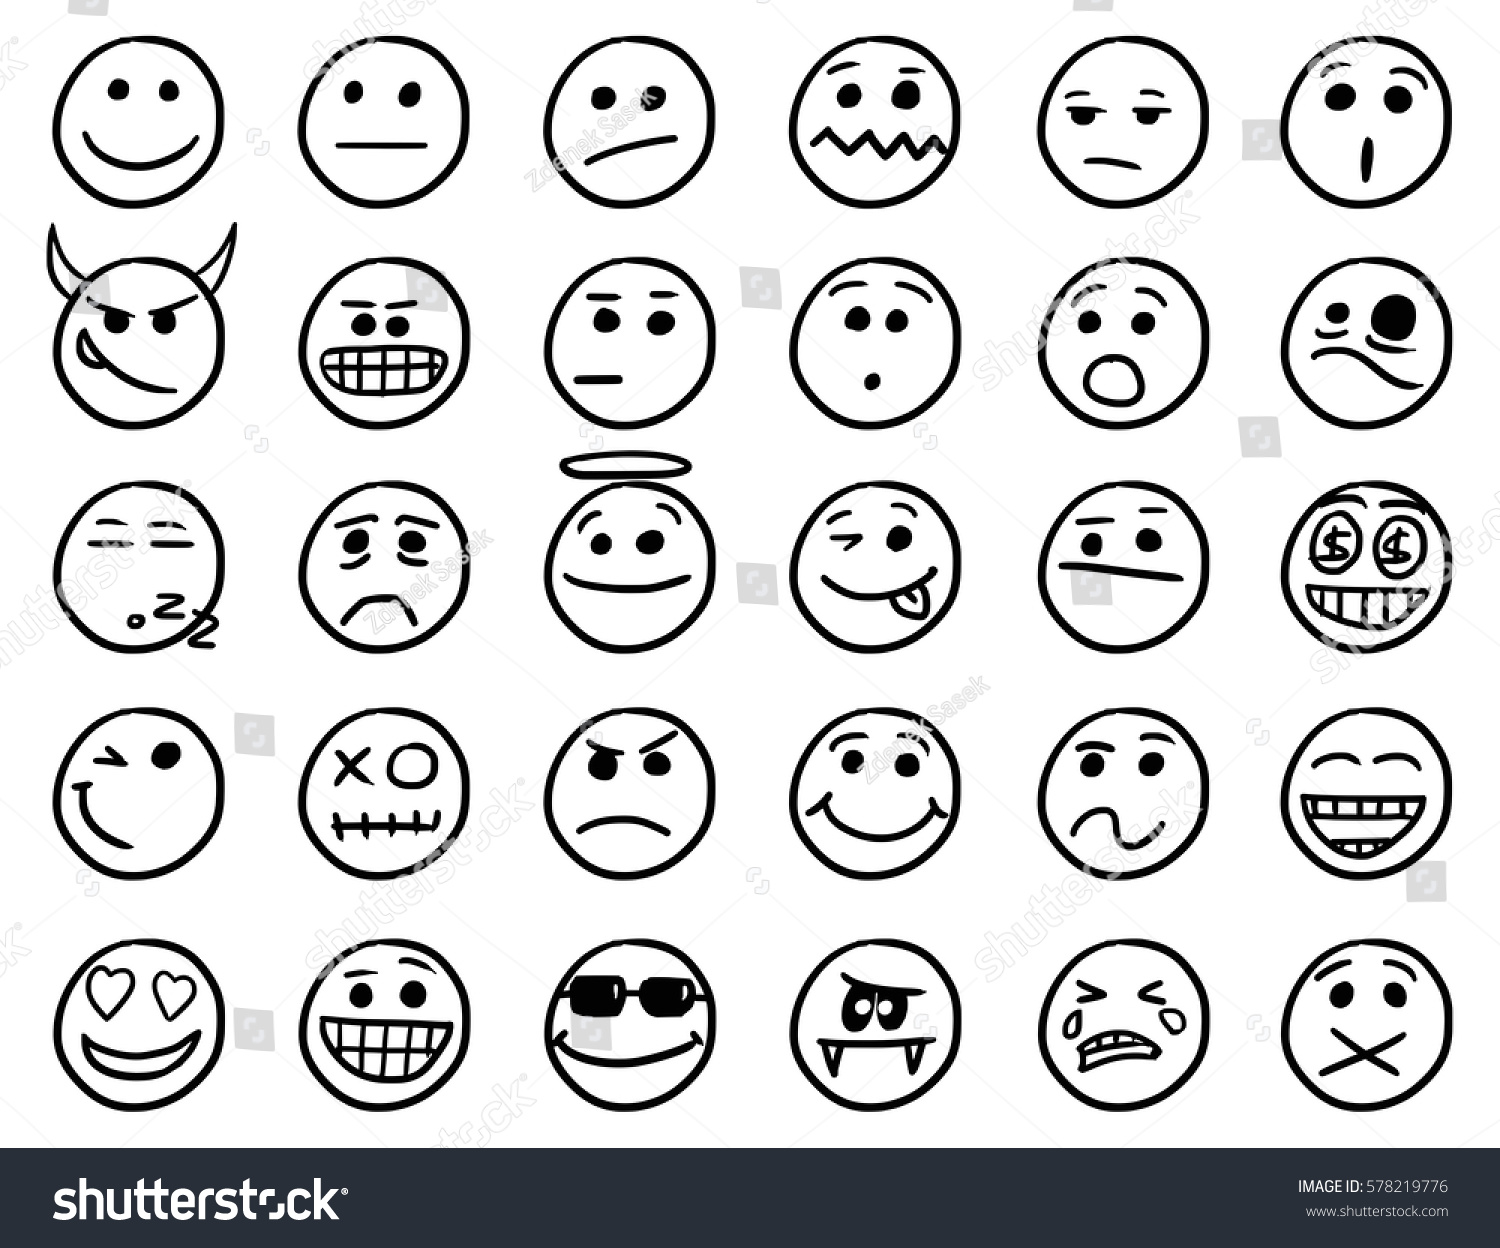 Set smiley emoticon icons drawings doodles stock vector 578219776 shutterstock - Smiley simple noir et blanc ...